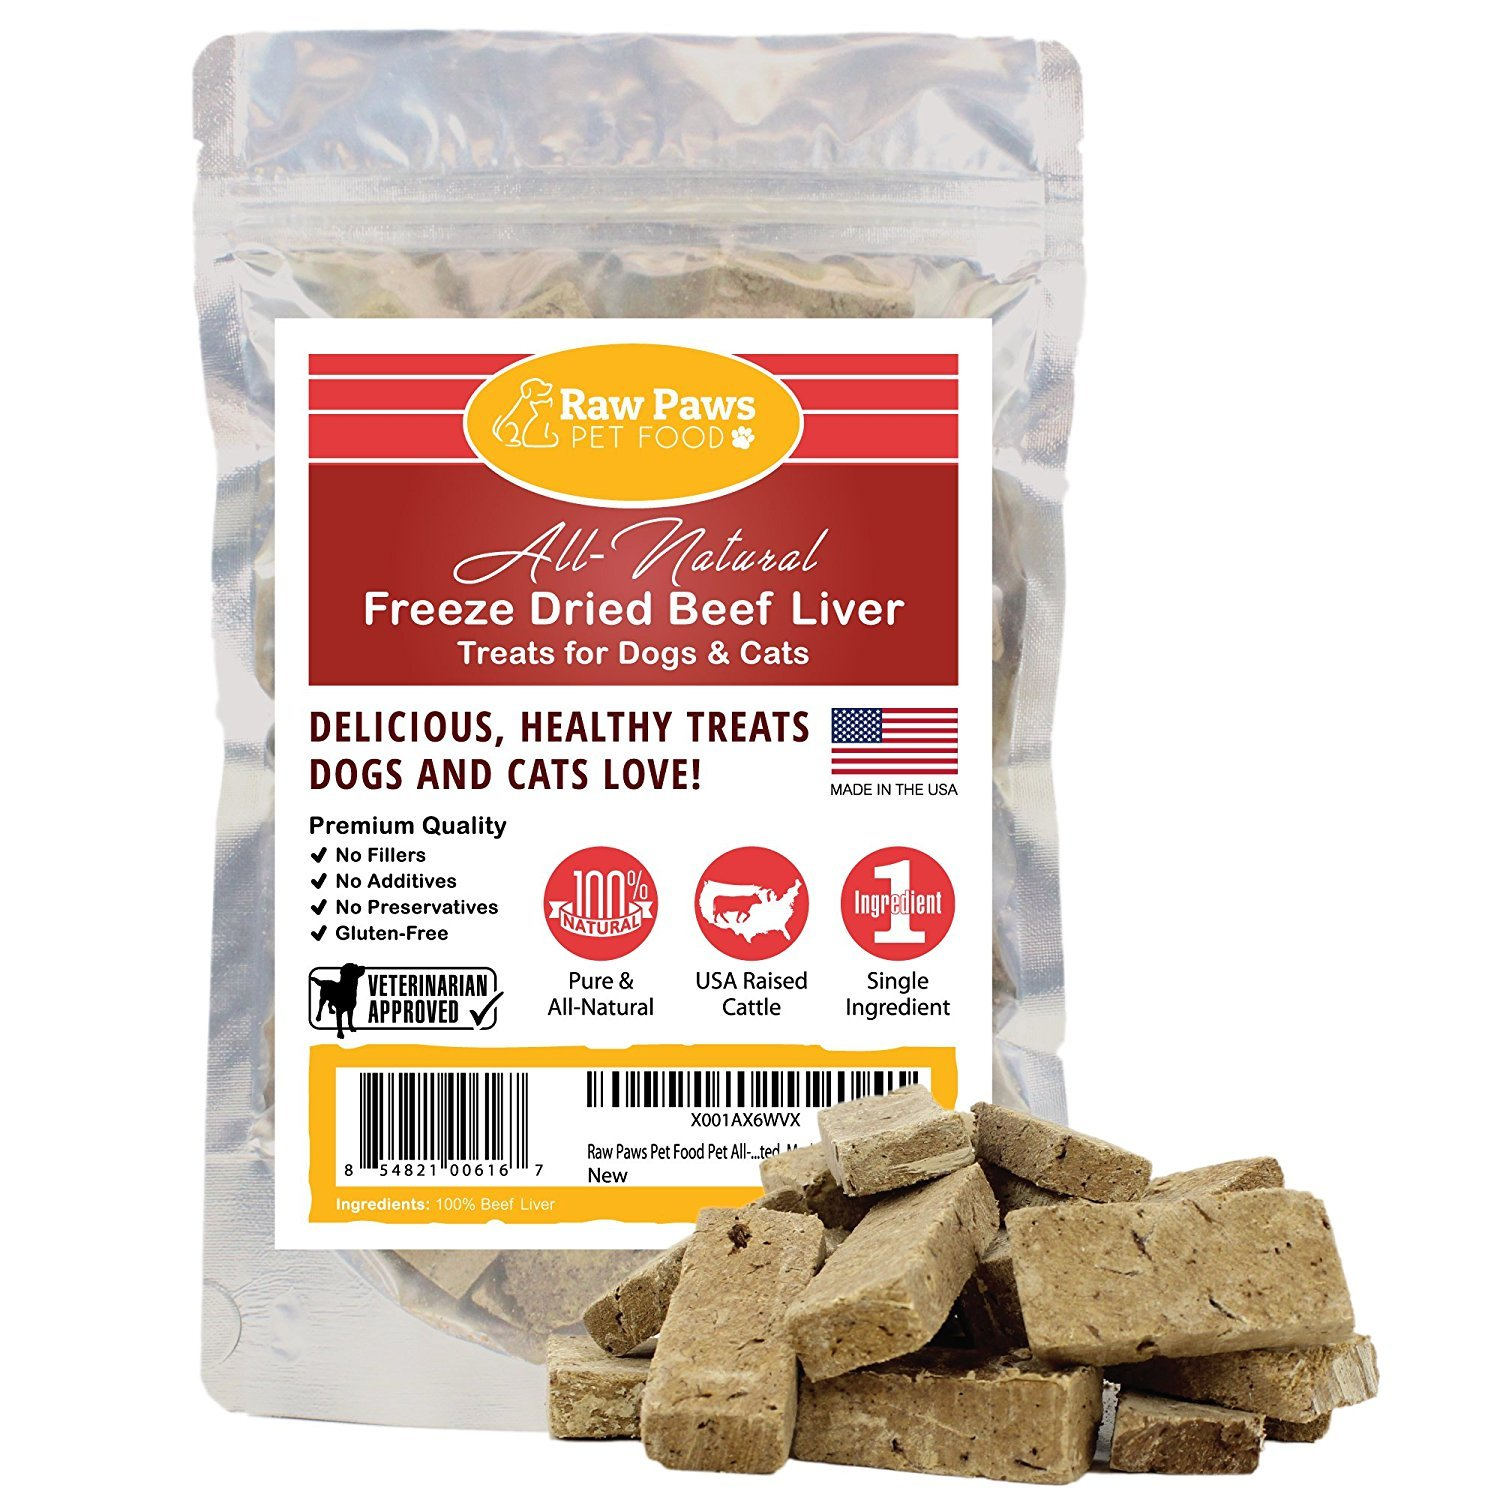 4-ounce Raw Paws Pet Food Pet All-Natural Freeze Dried Beef Liver Treats for Dogs & Cats No Preservatives, Grain Free, USDA Inspected, Made in The USA, 4 oz